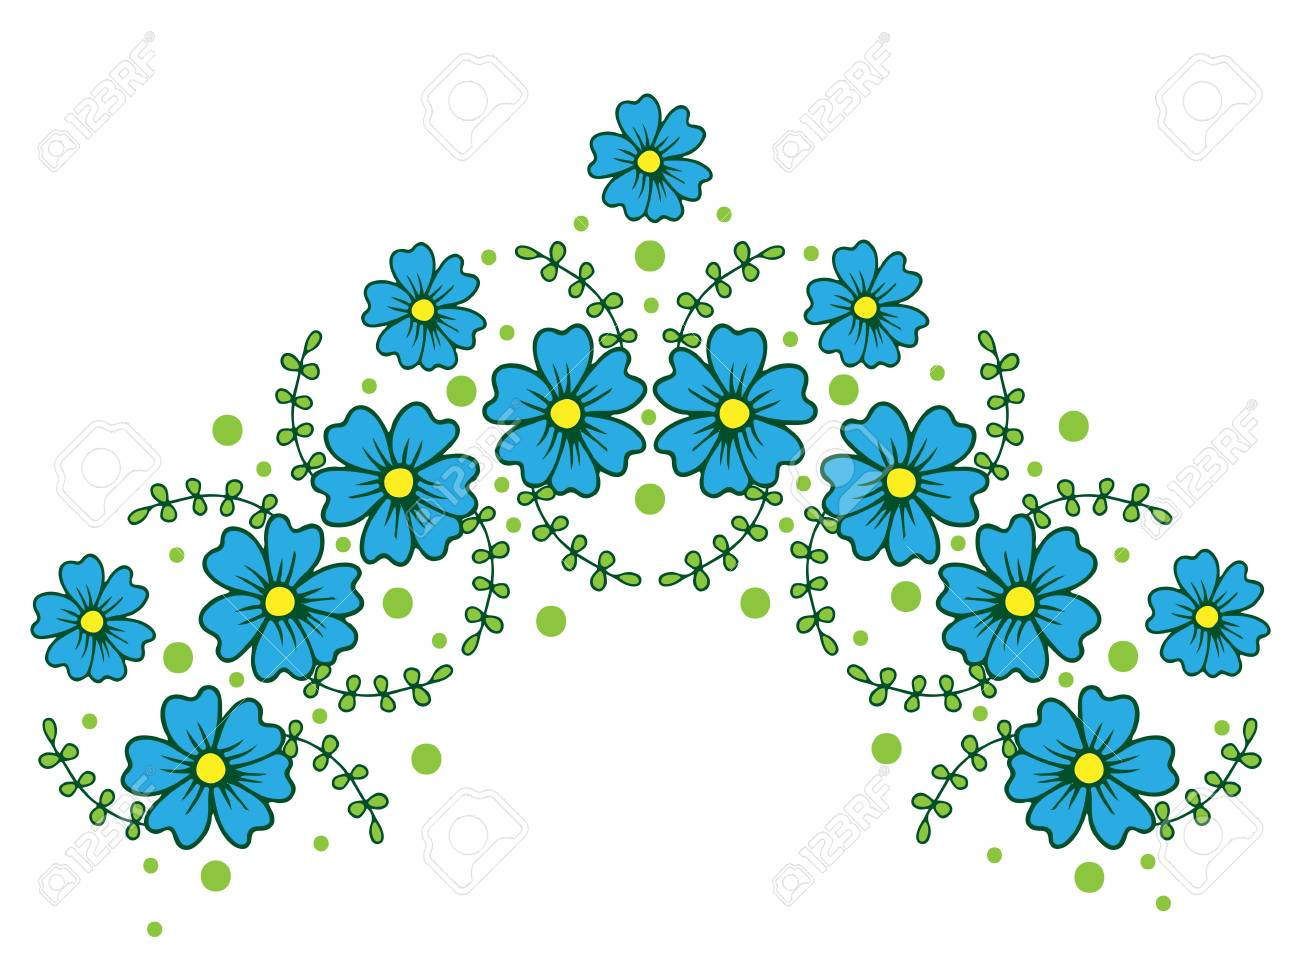 Decorative isolated floral half circle frames with blue flower decorative isolated floral half circle frames with blue flower vector flower wreath for card izmirmasajfo